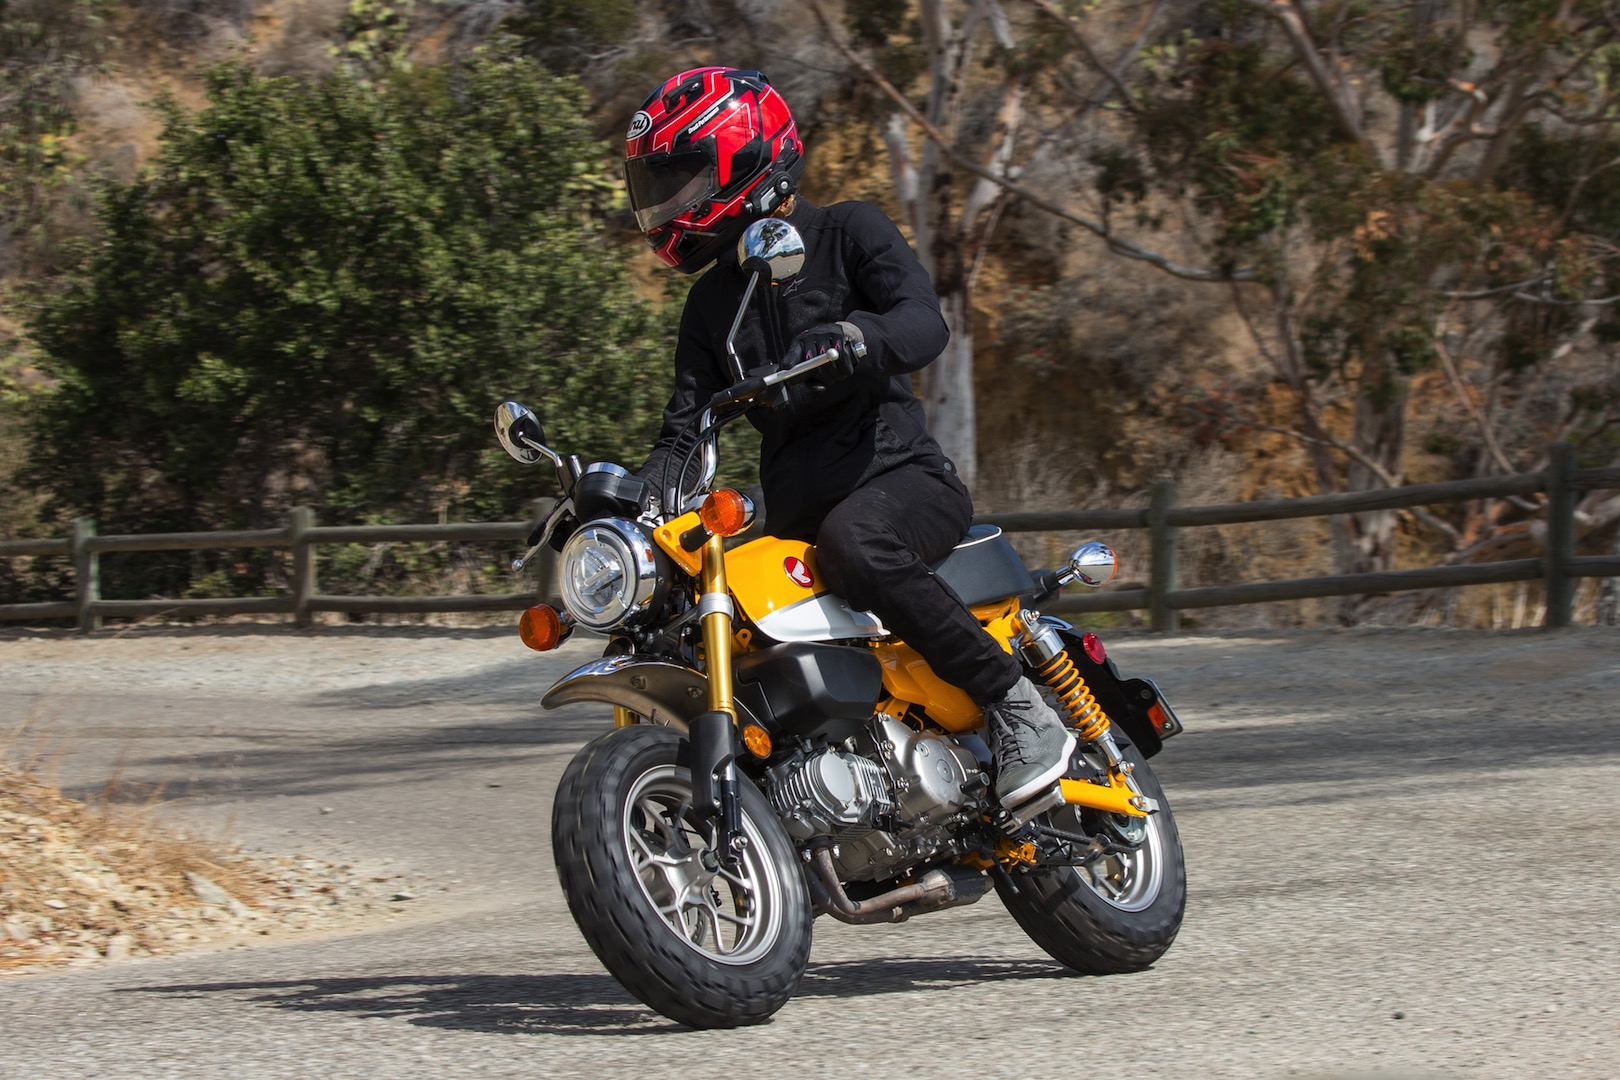 2019 Honda Monkey Review: Hey! Hey! It's The Monkey! (14 ...